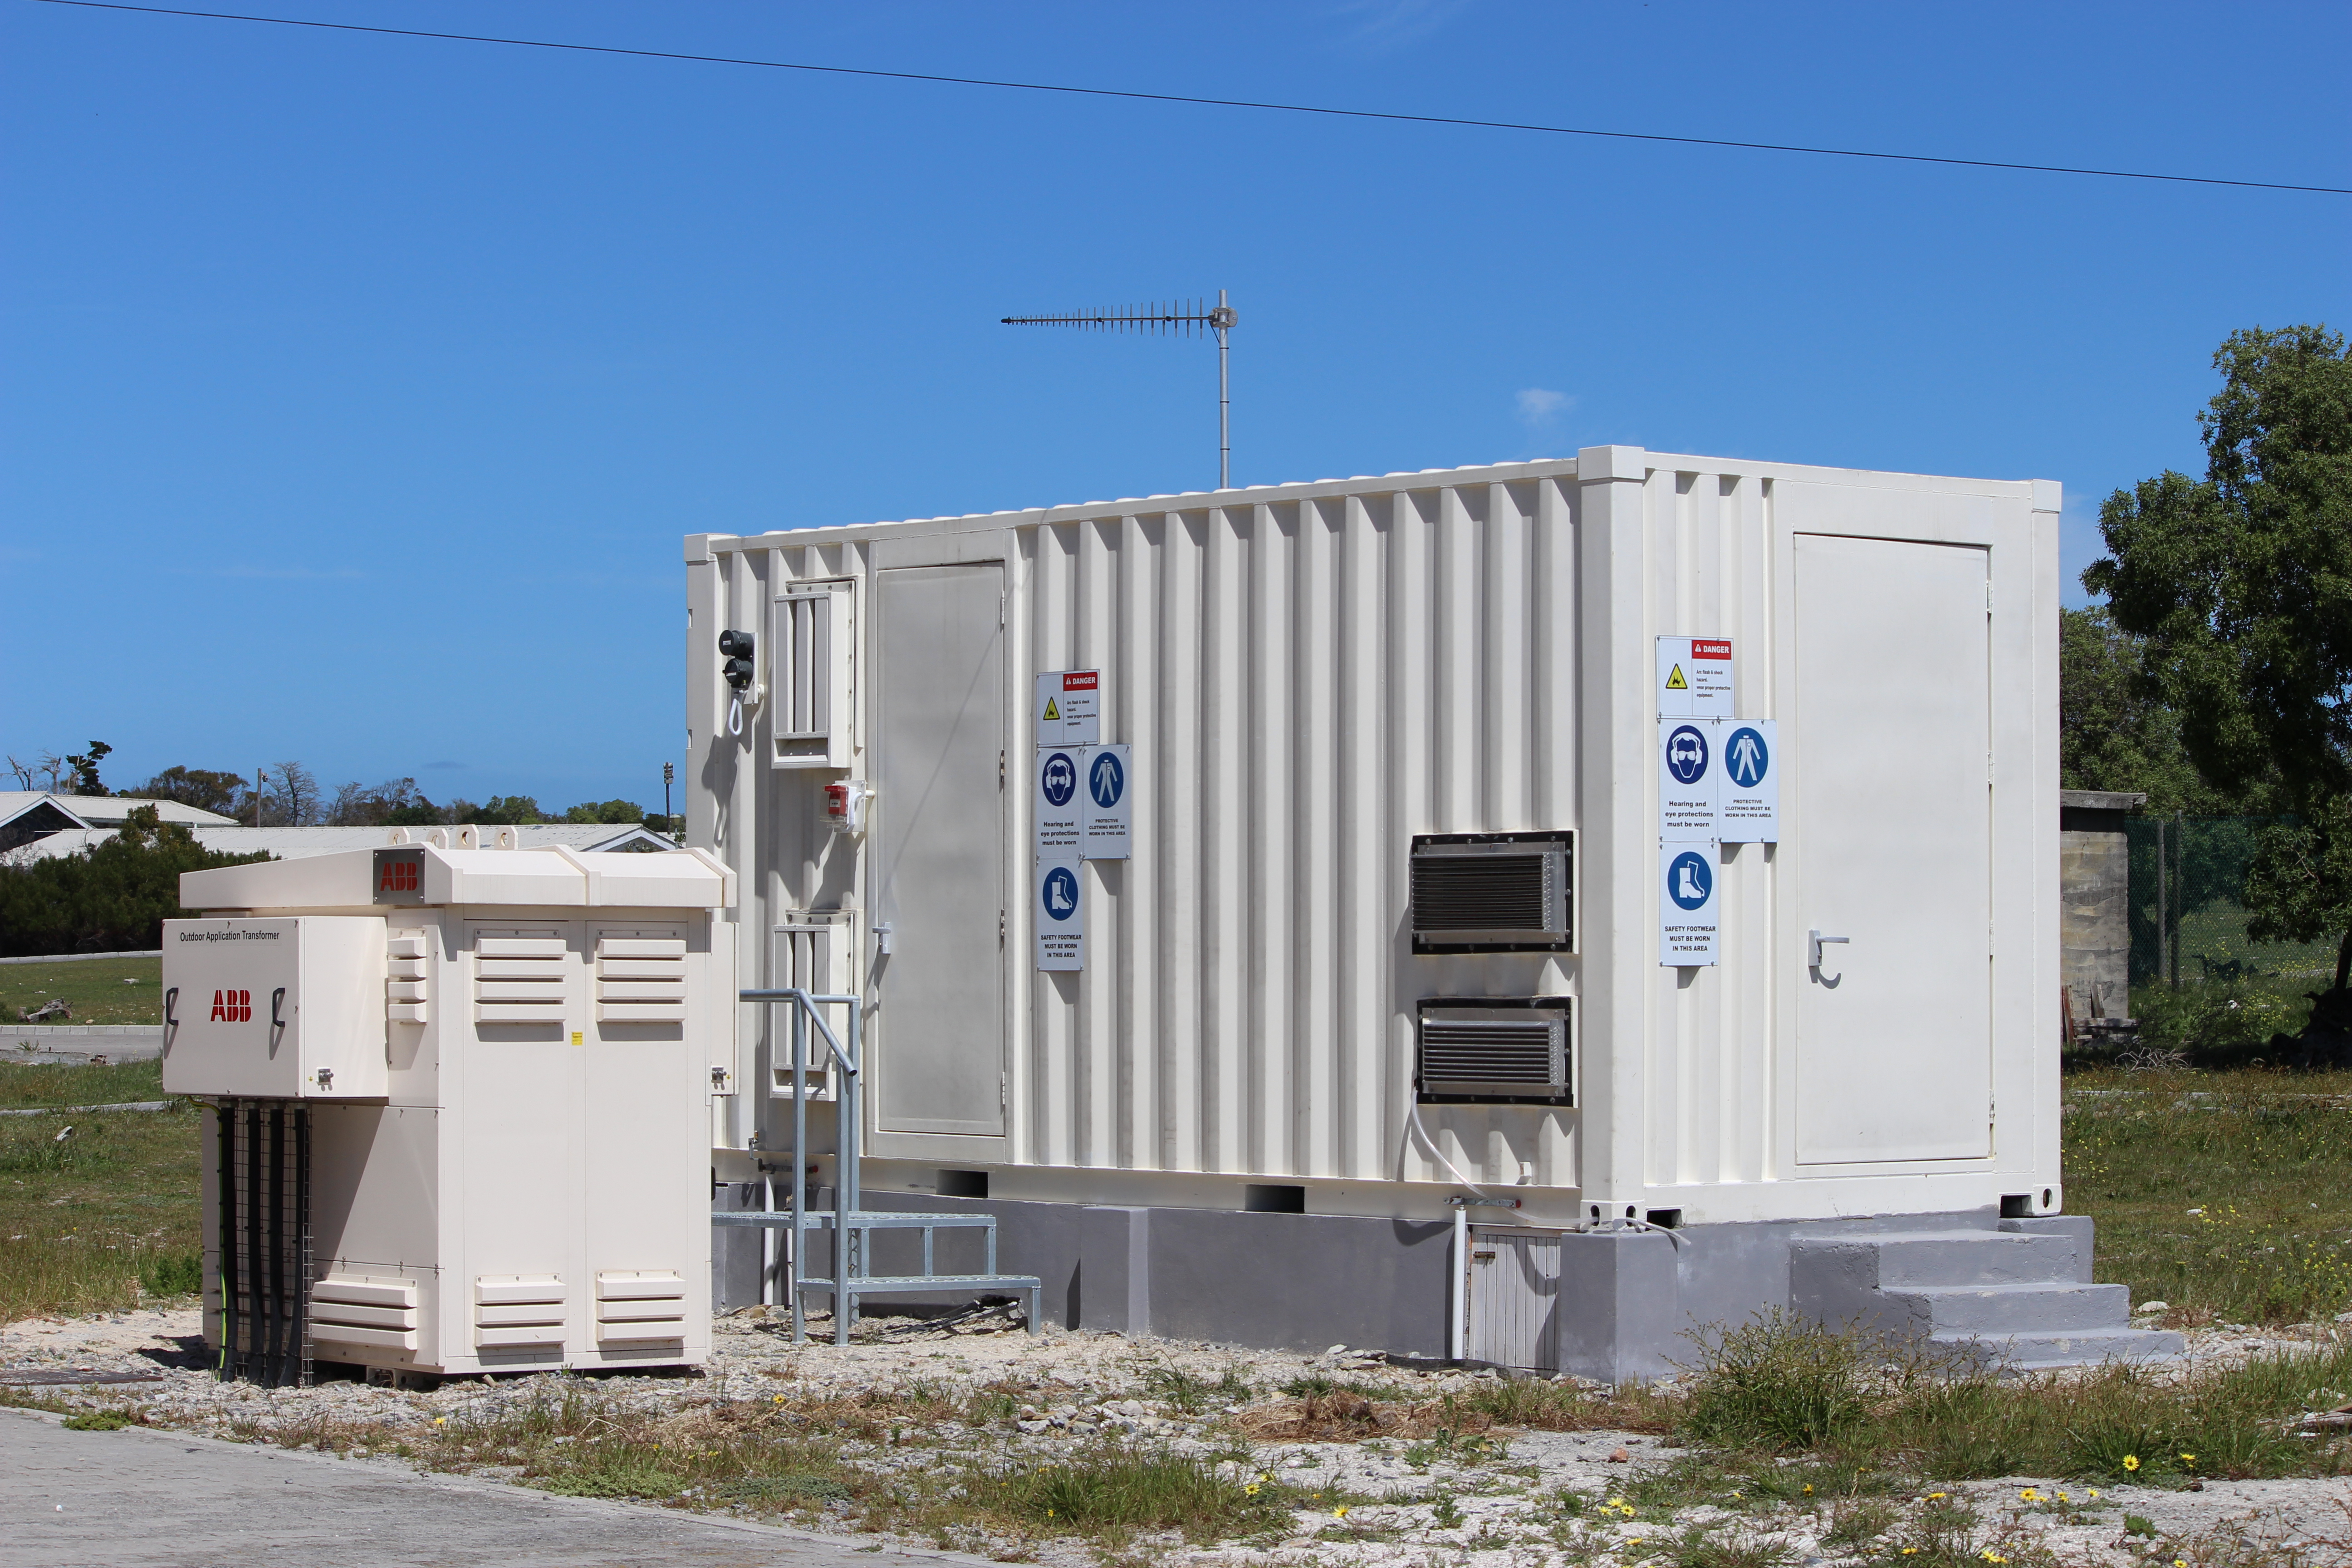 Energy Storage And Microgrid Projects Get Boost With Abb